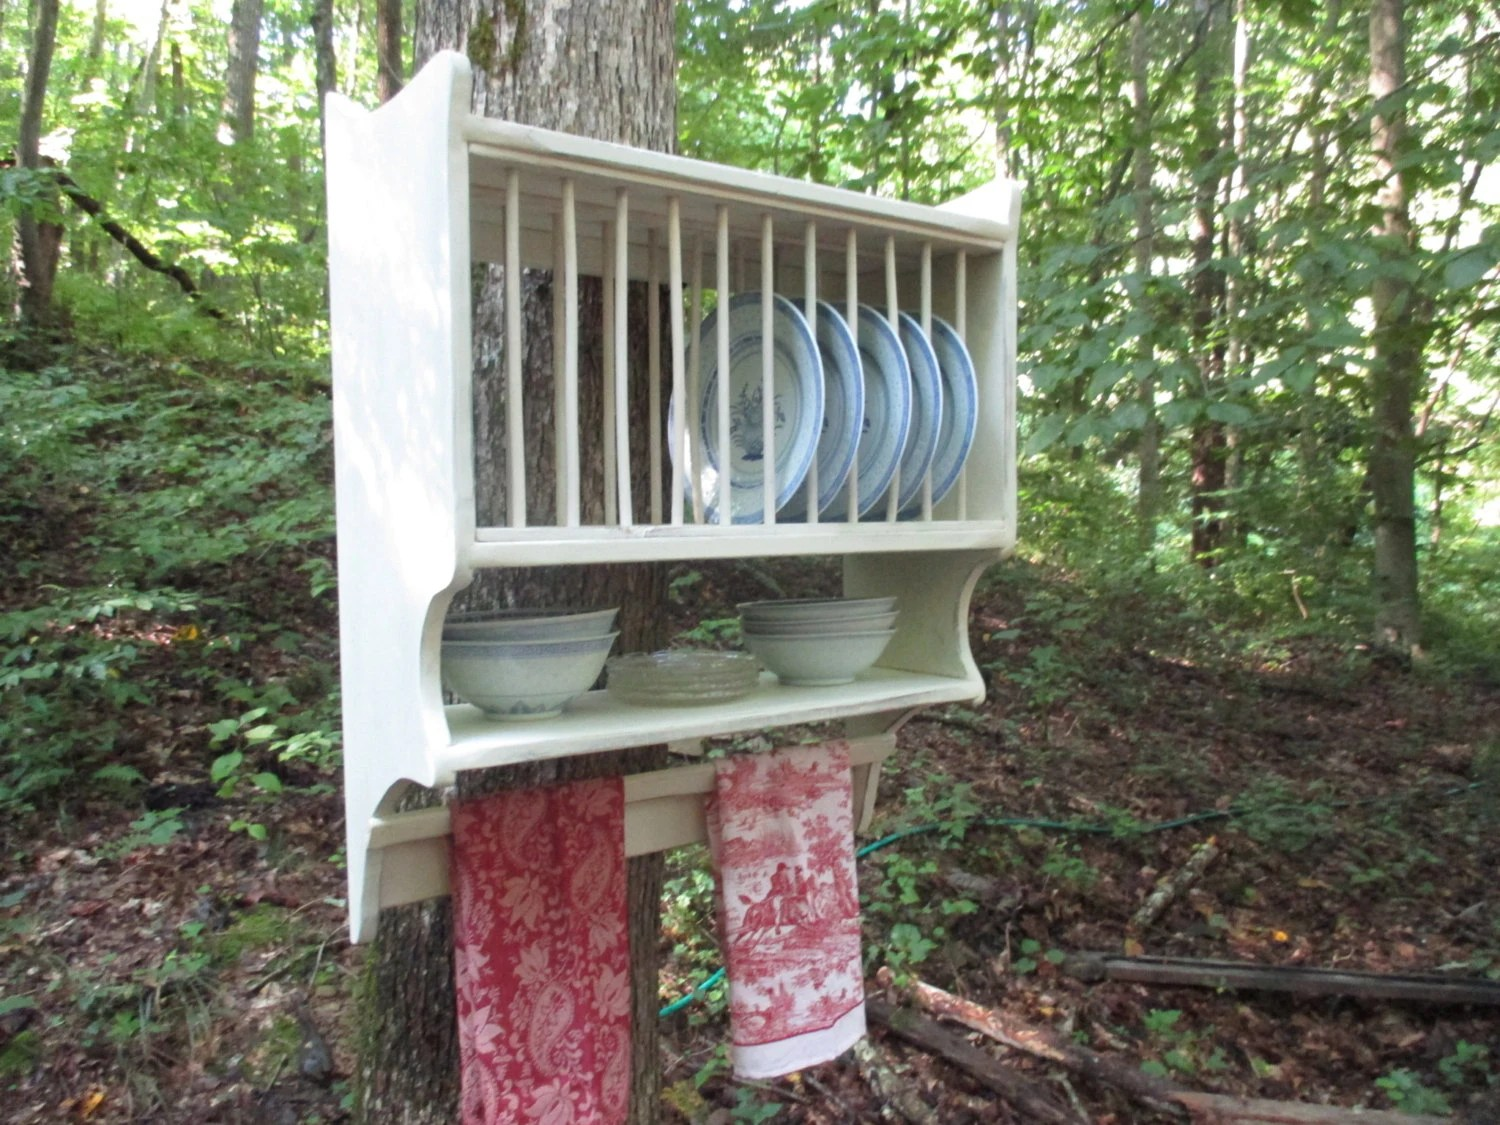 Farmhouse Plate Rack With Primitive Towel Rung Hanging Plate